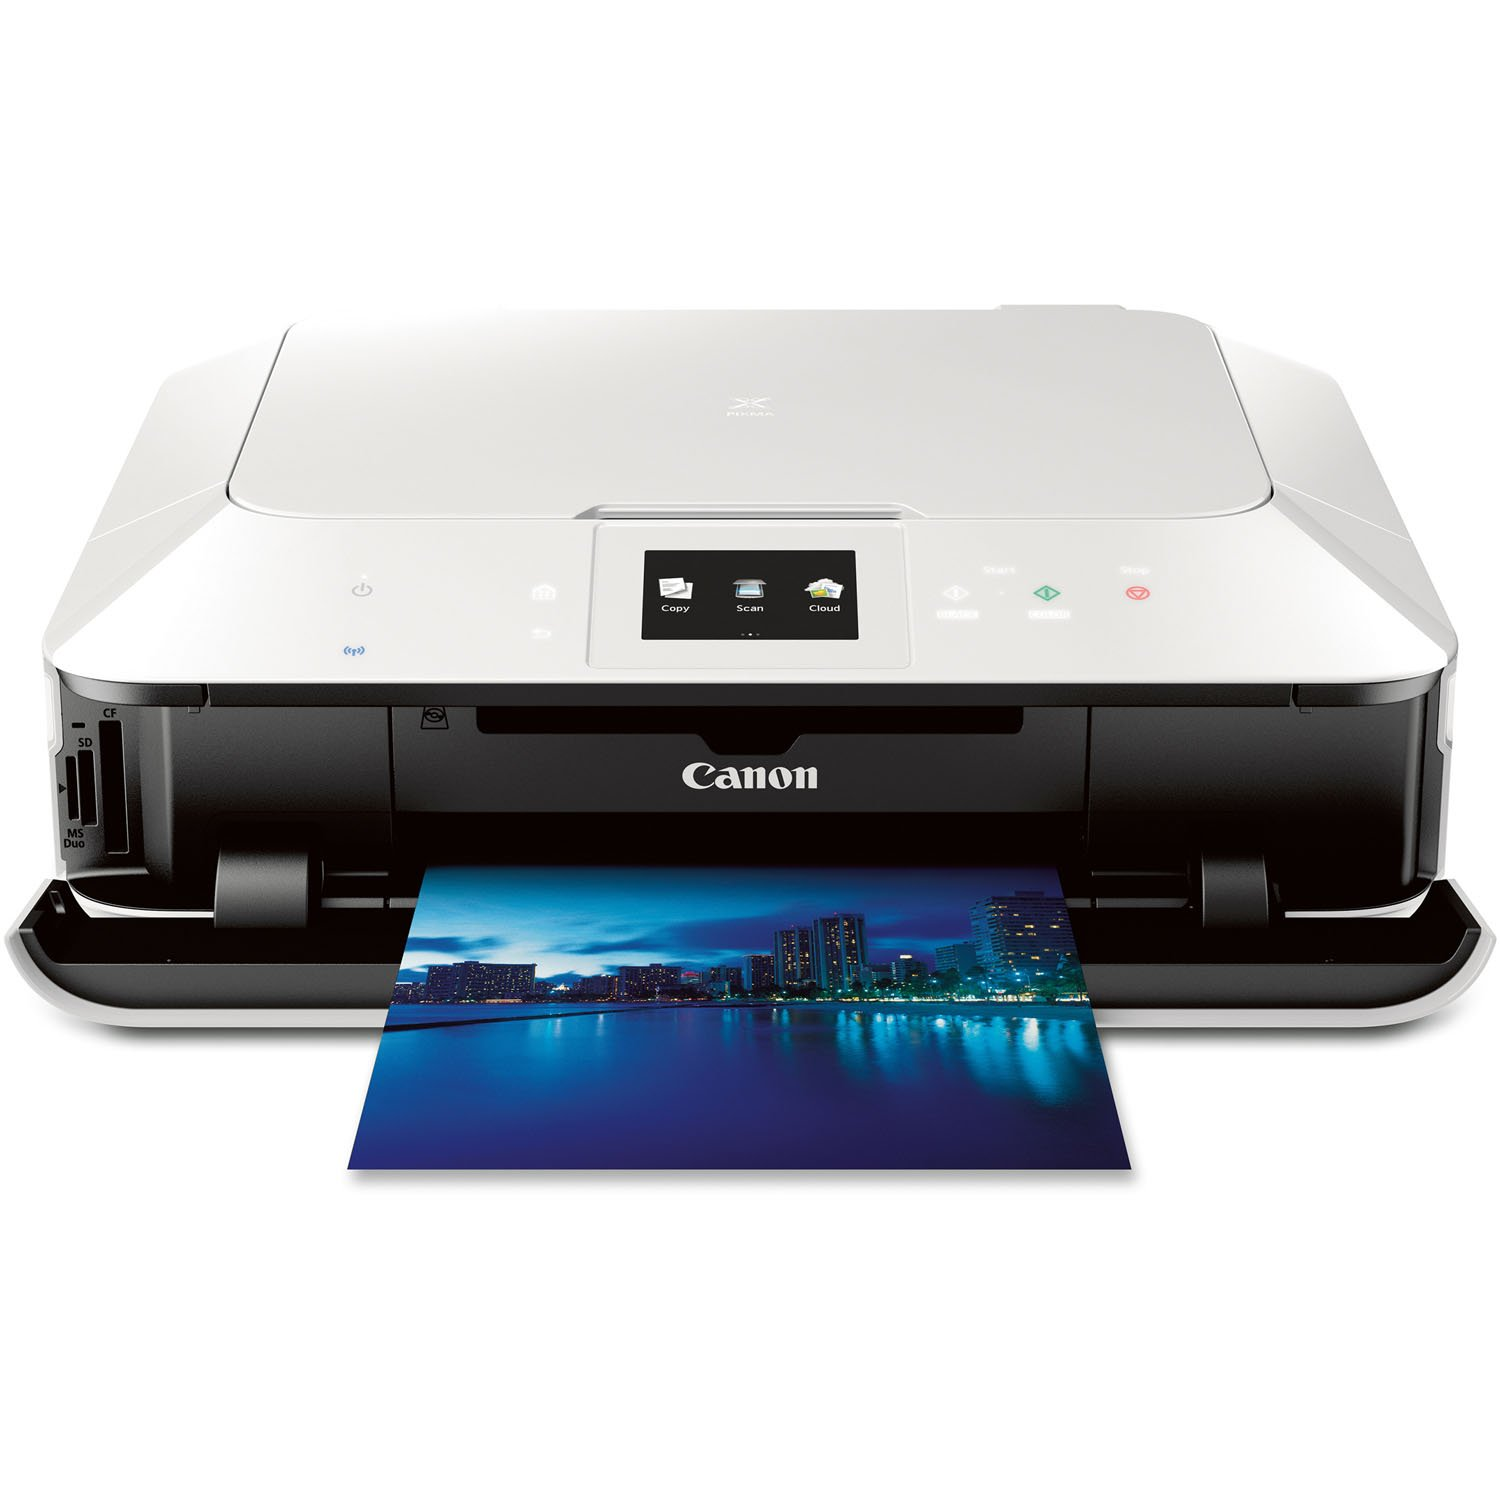 Amazon.com: Canon PIXMA MG7120 Wireless Color Photo All-In-One Printer,  Mobile Smart Phone and Tablet Printing, White: Electronics